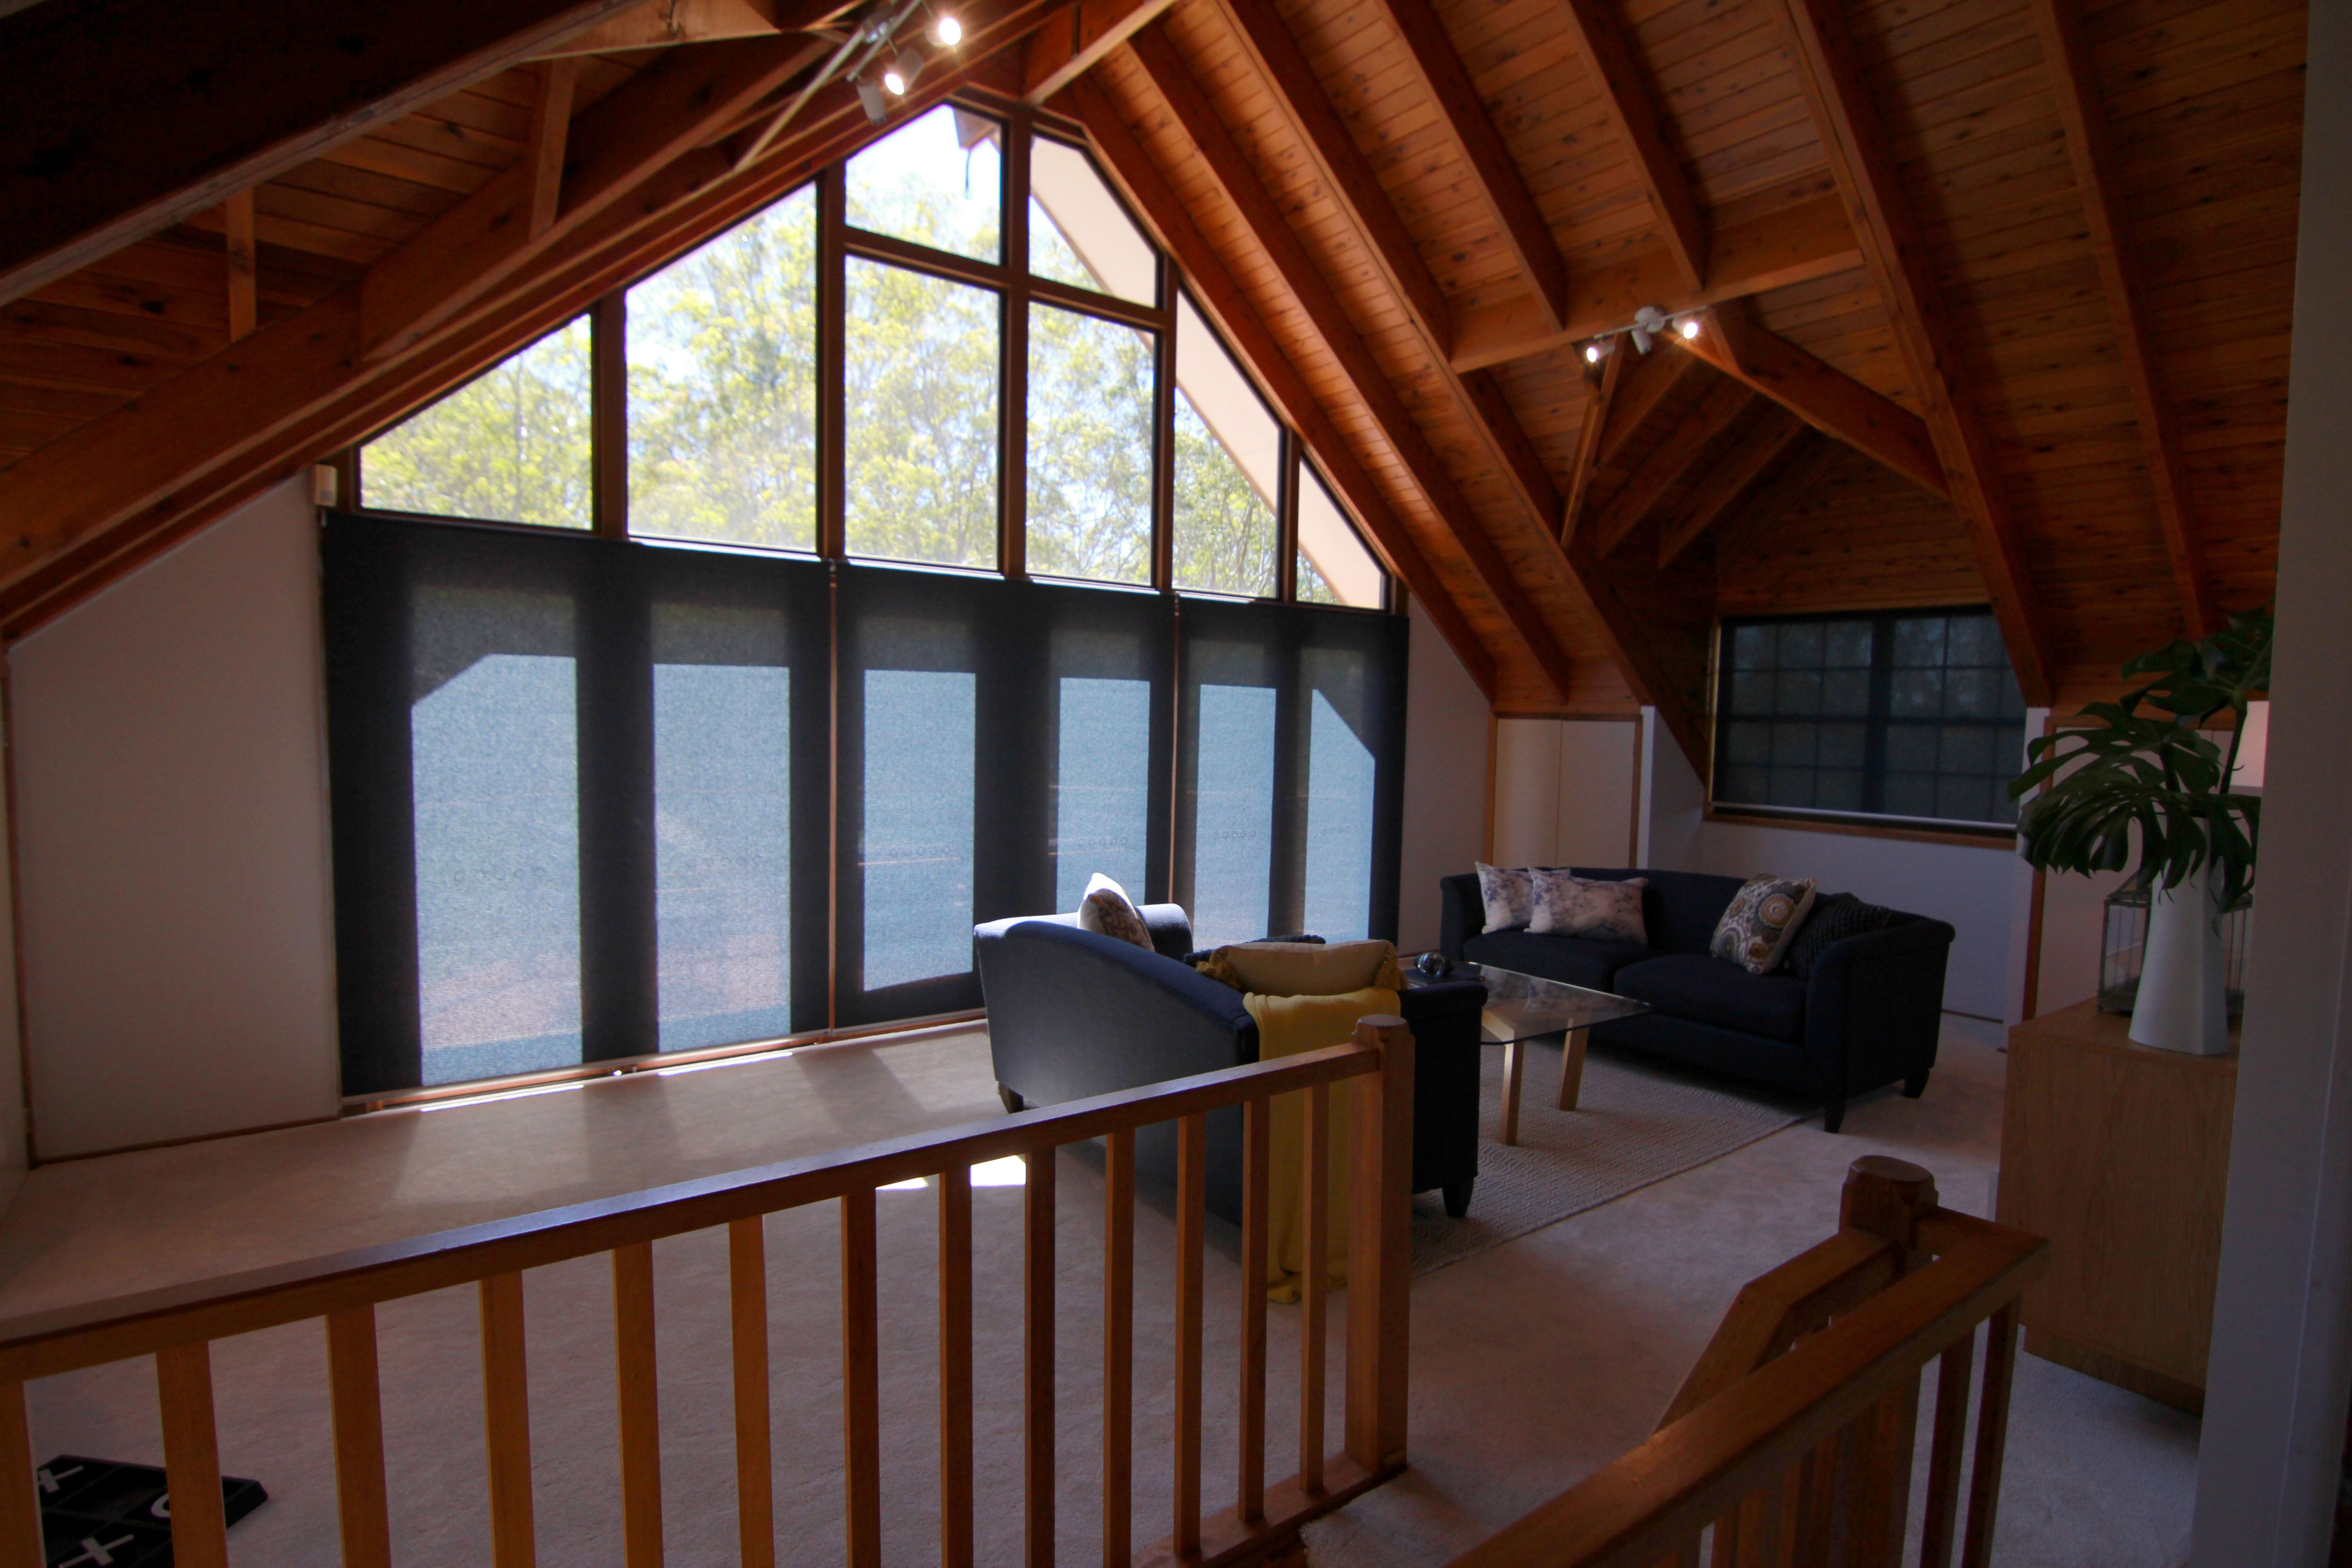 Luxaflex Roller Blinds In Caspien Range Night Sky Episode 13 Middle Ridge Qld Supplied By Carpet One Floor Home Toowoomba Selling House House Home